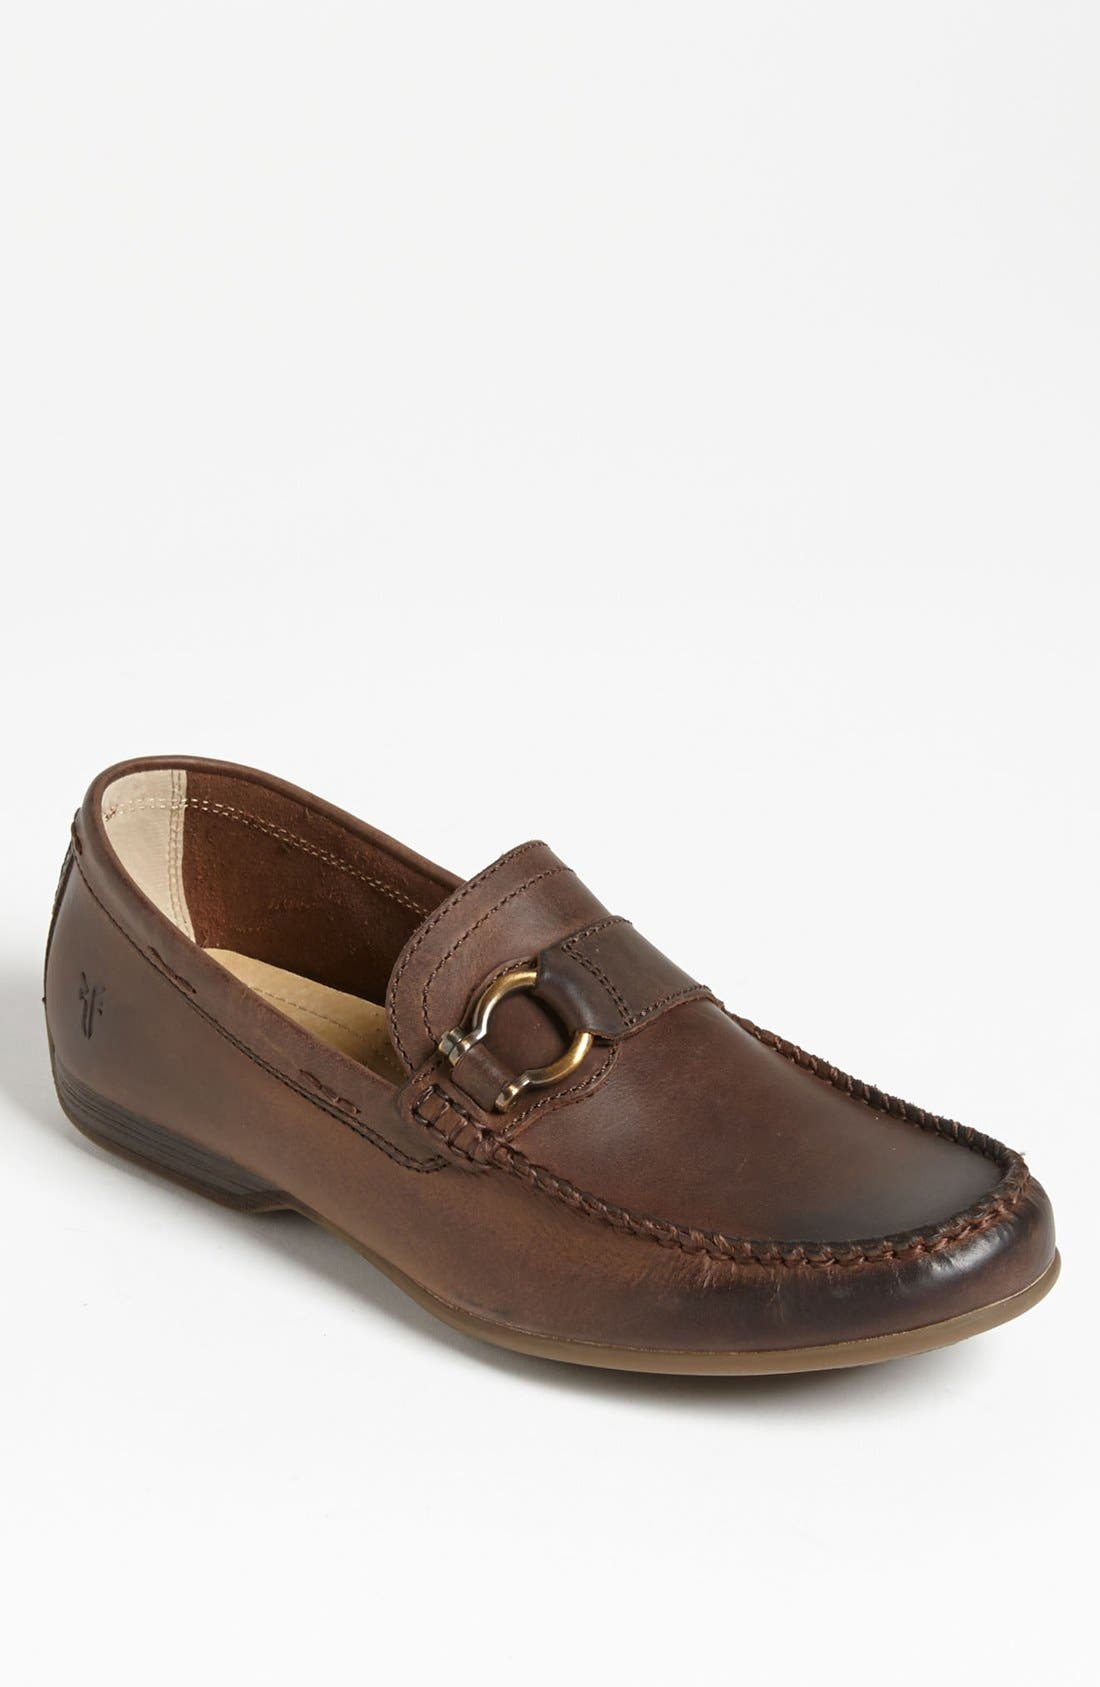 Alternate Image 1 Selected - Frye 'Lewis' Bit Loafer